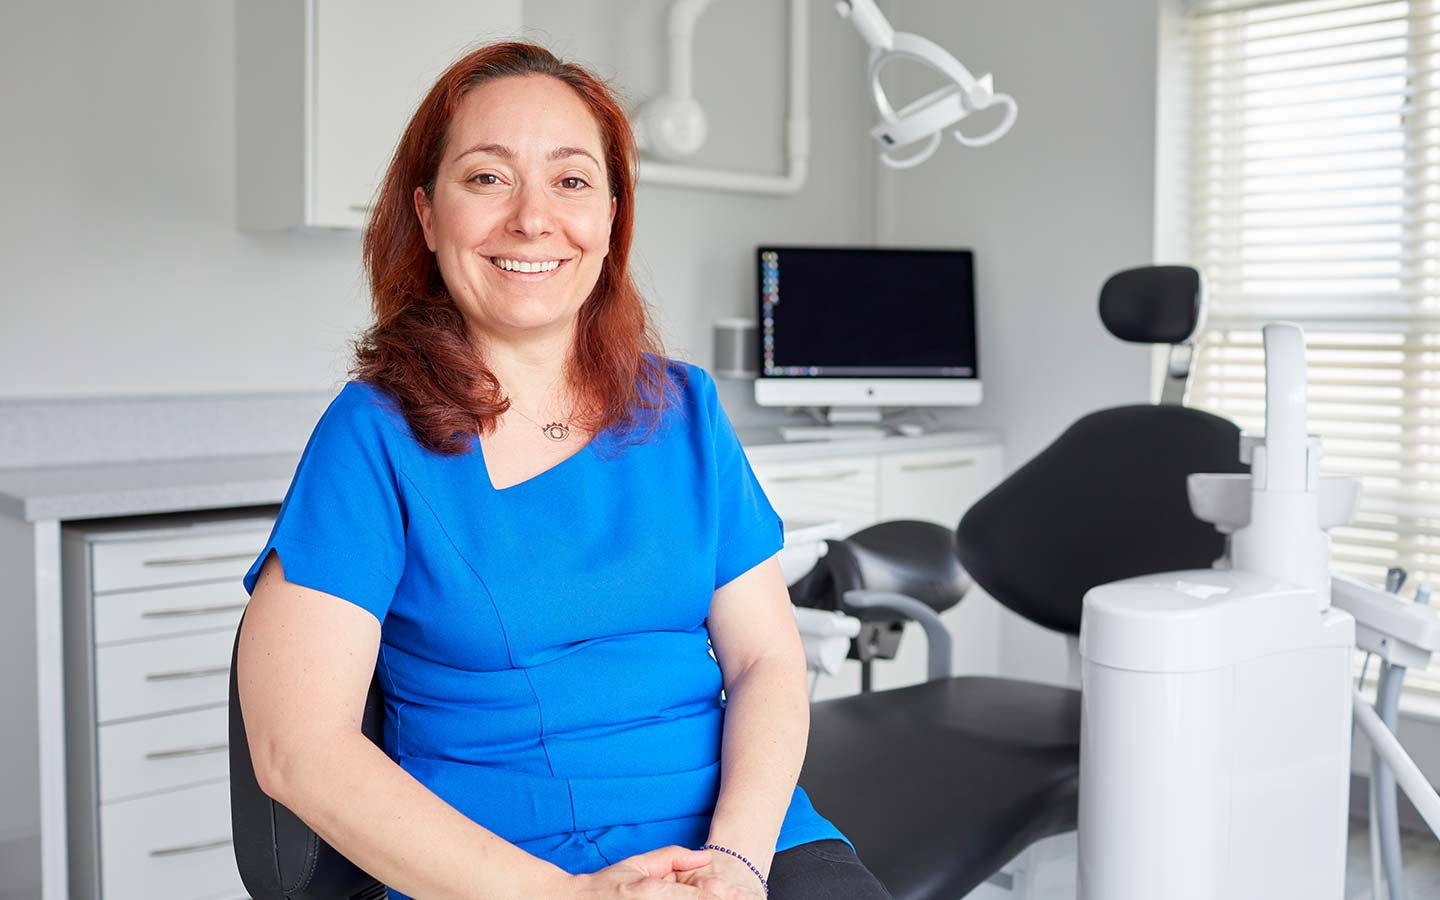 Smiling woman in dental clinic